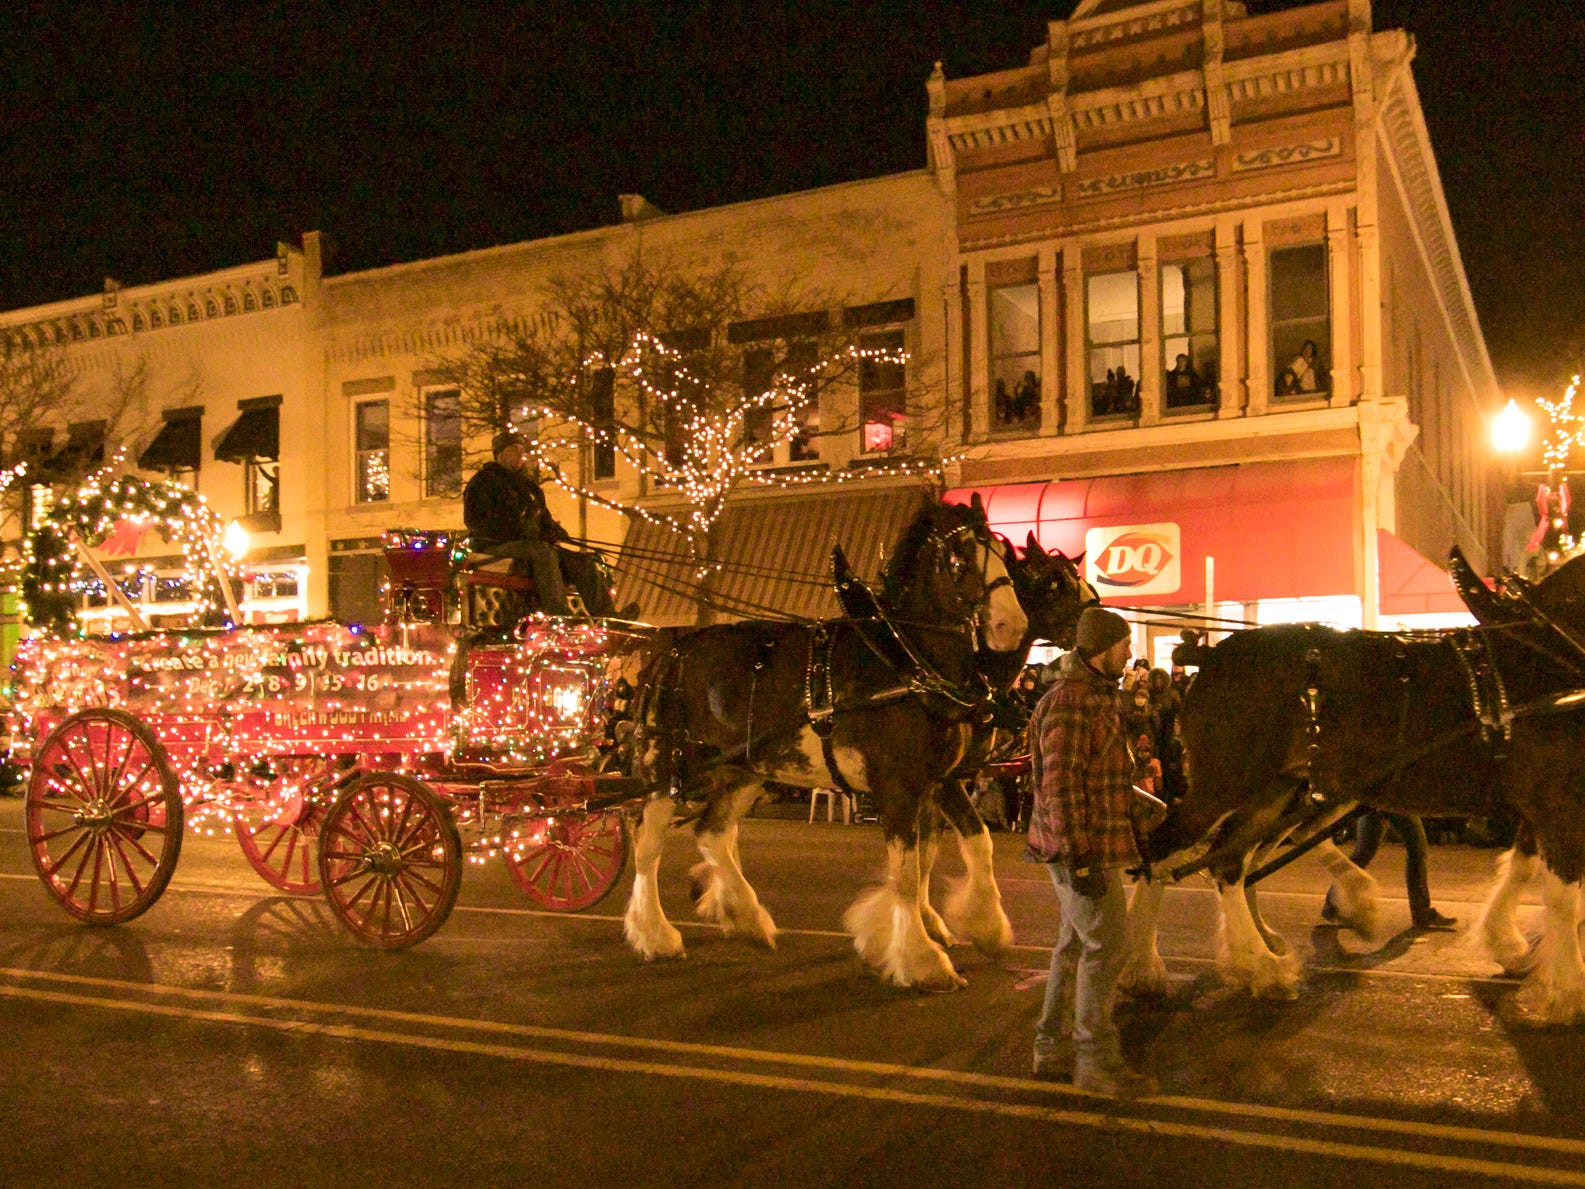 The Wolcott Mill Metropark float is pulled by a team of Clydesdale horses in the Fantasy of Lights parade Friday, Nov. 23, 2018.